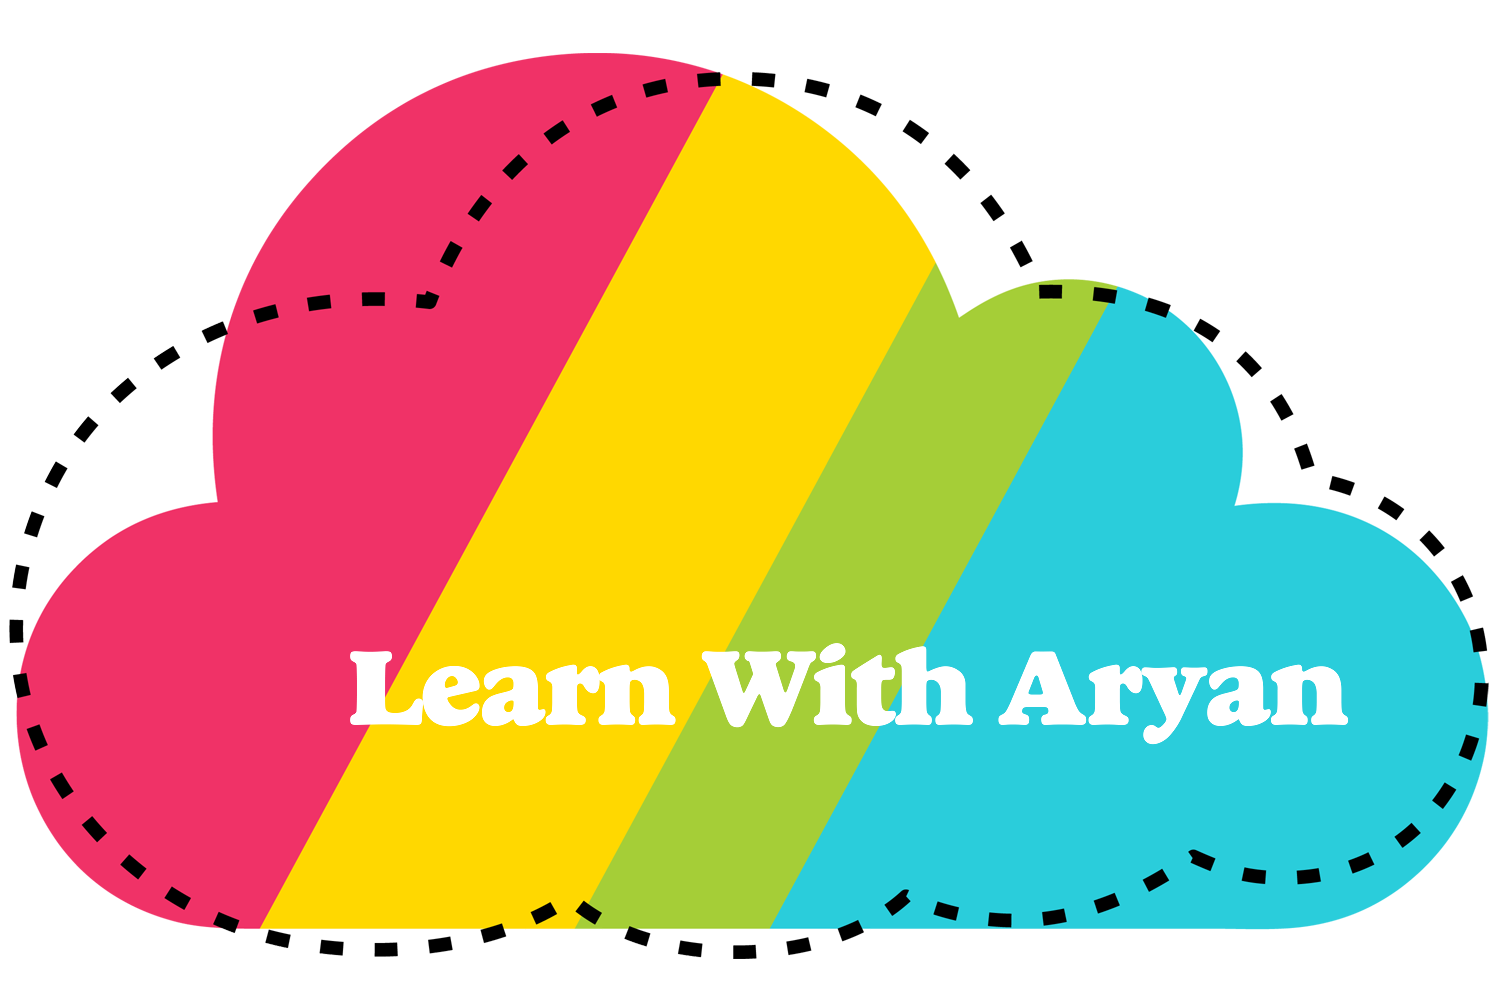 LEARN with Aryan